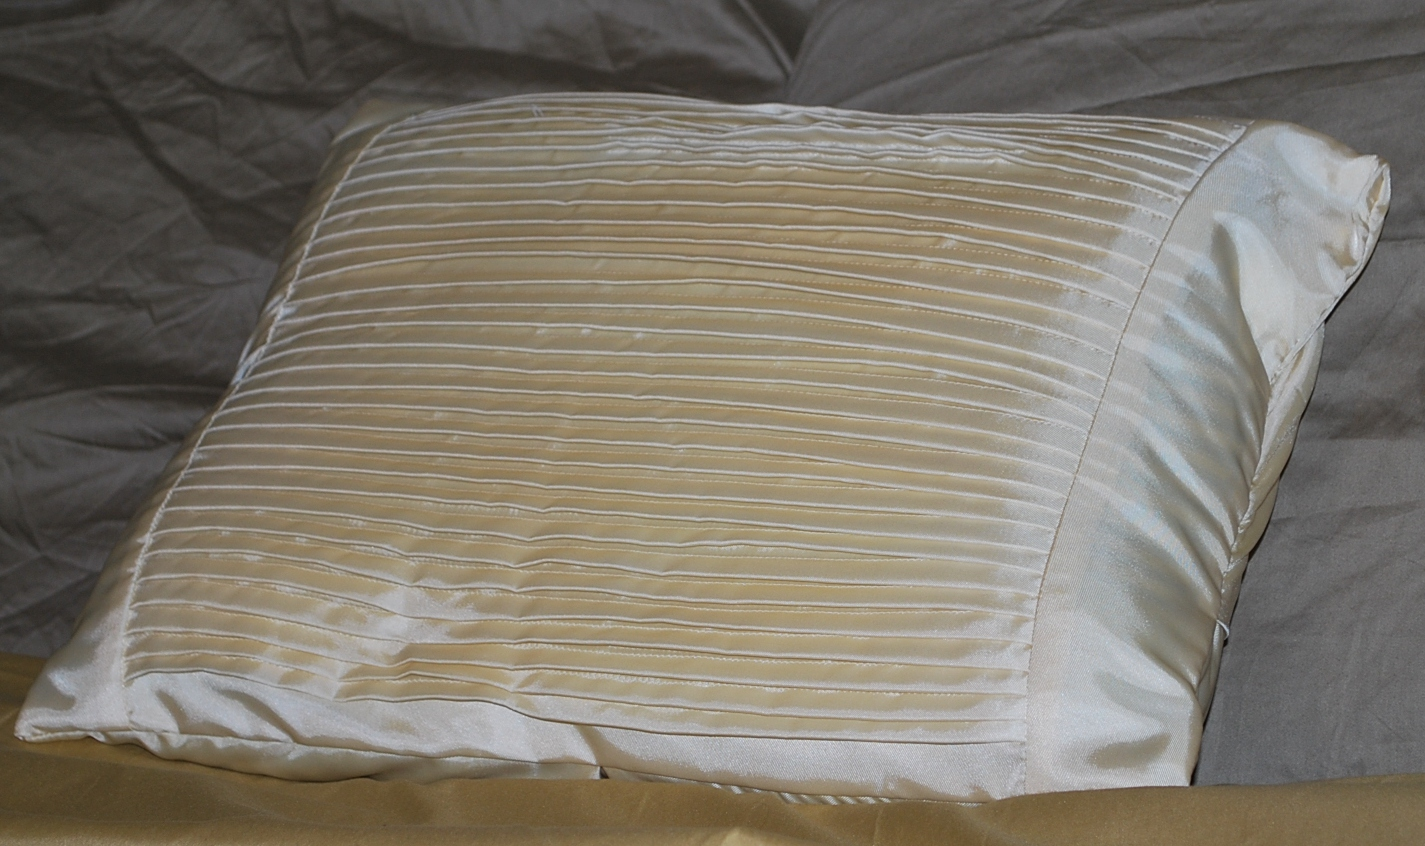 http://joysjotsshots.blogspot.com/2011/10/satin-pillow-from.html